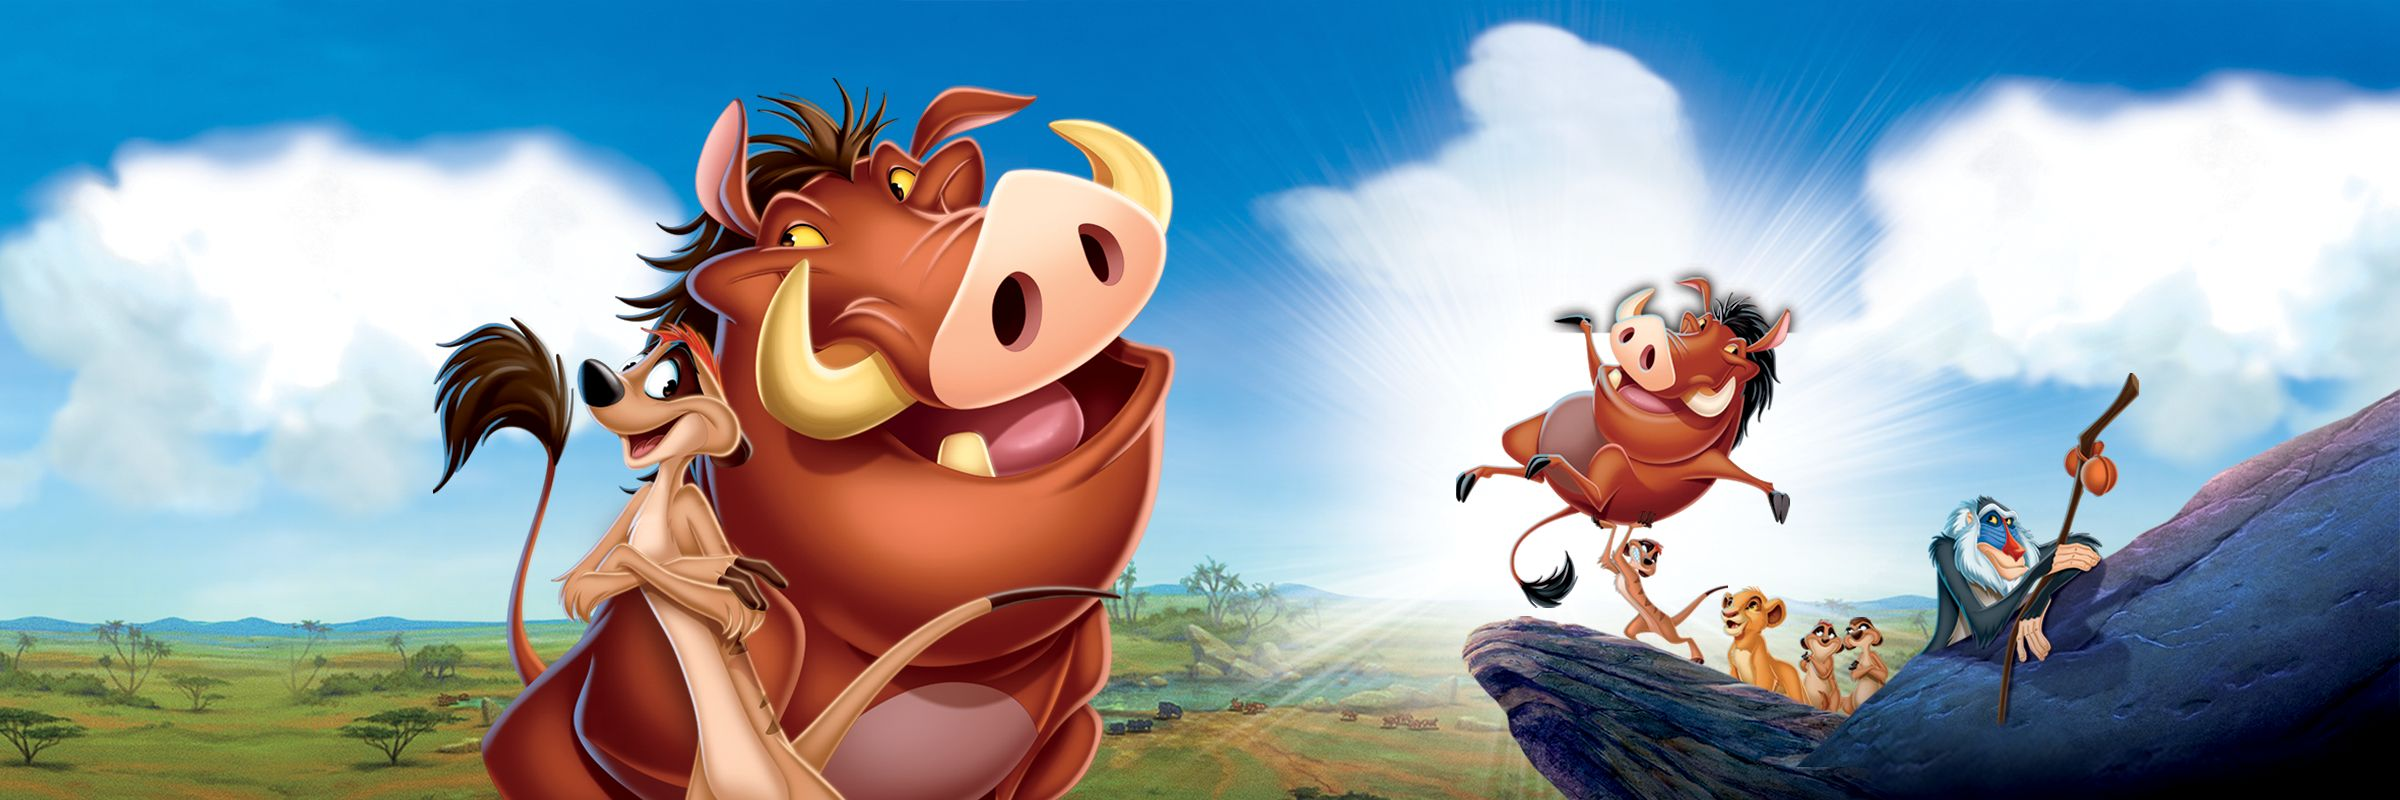 The Lion King 1 1/2   Full Movie   Movies Anywhere